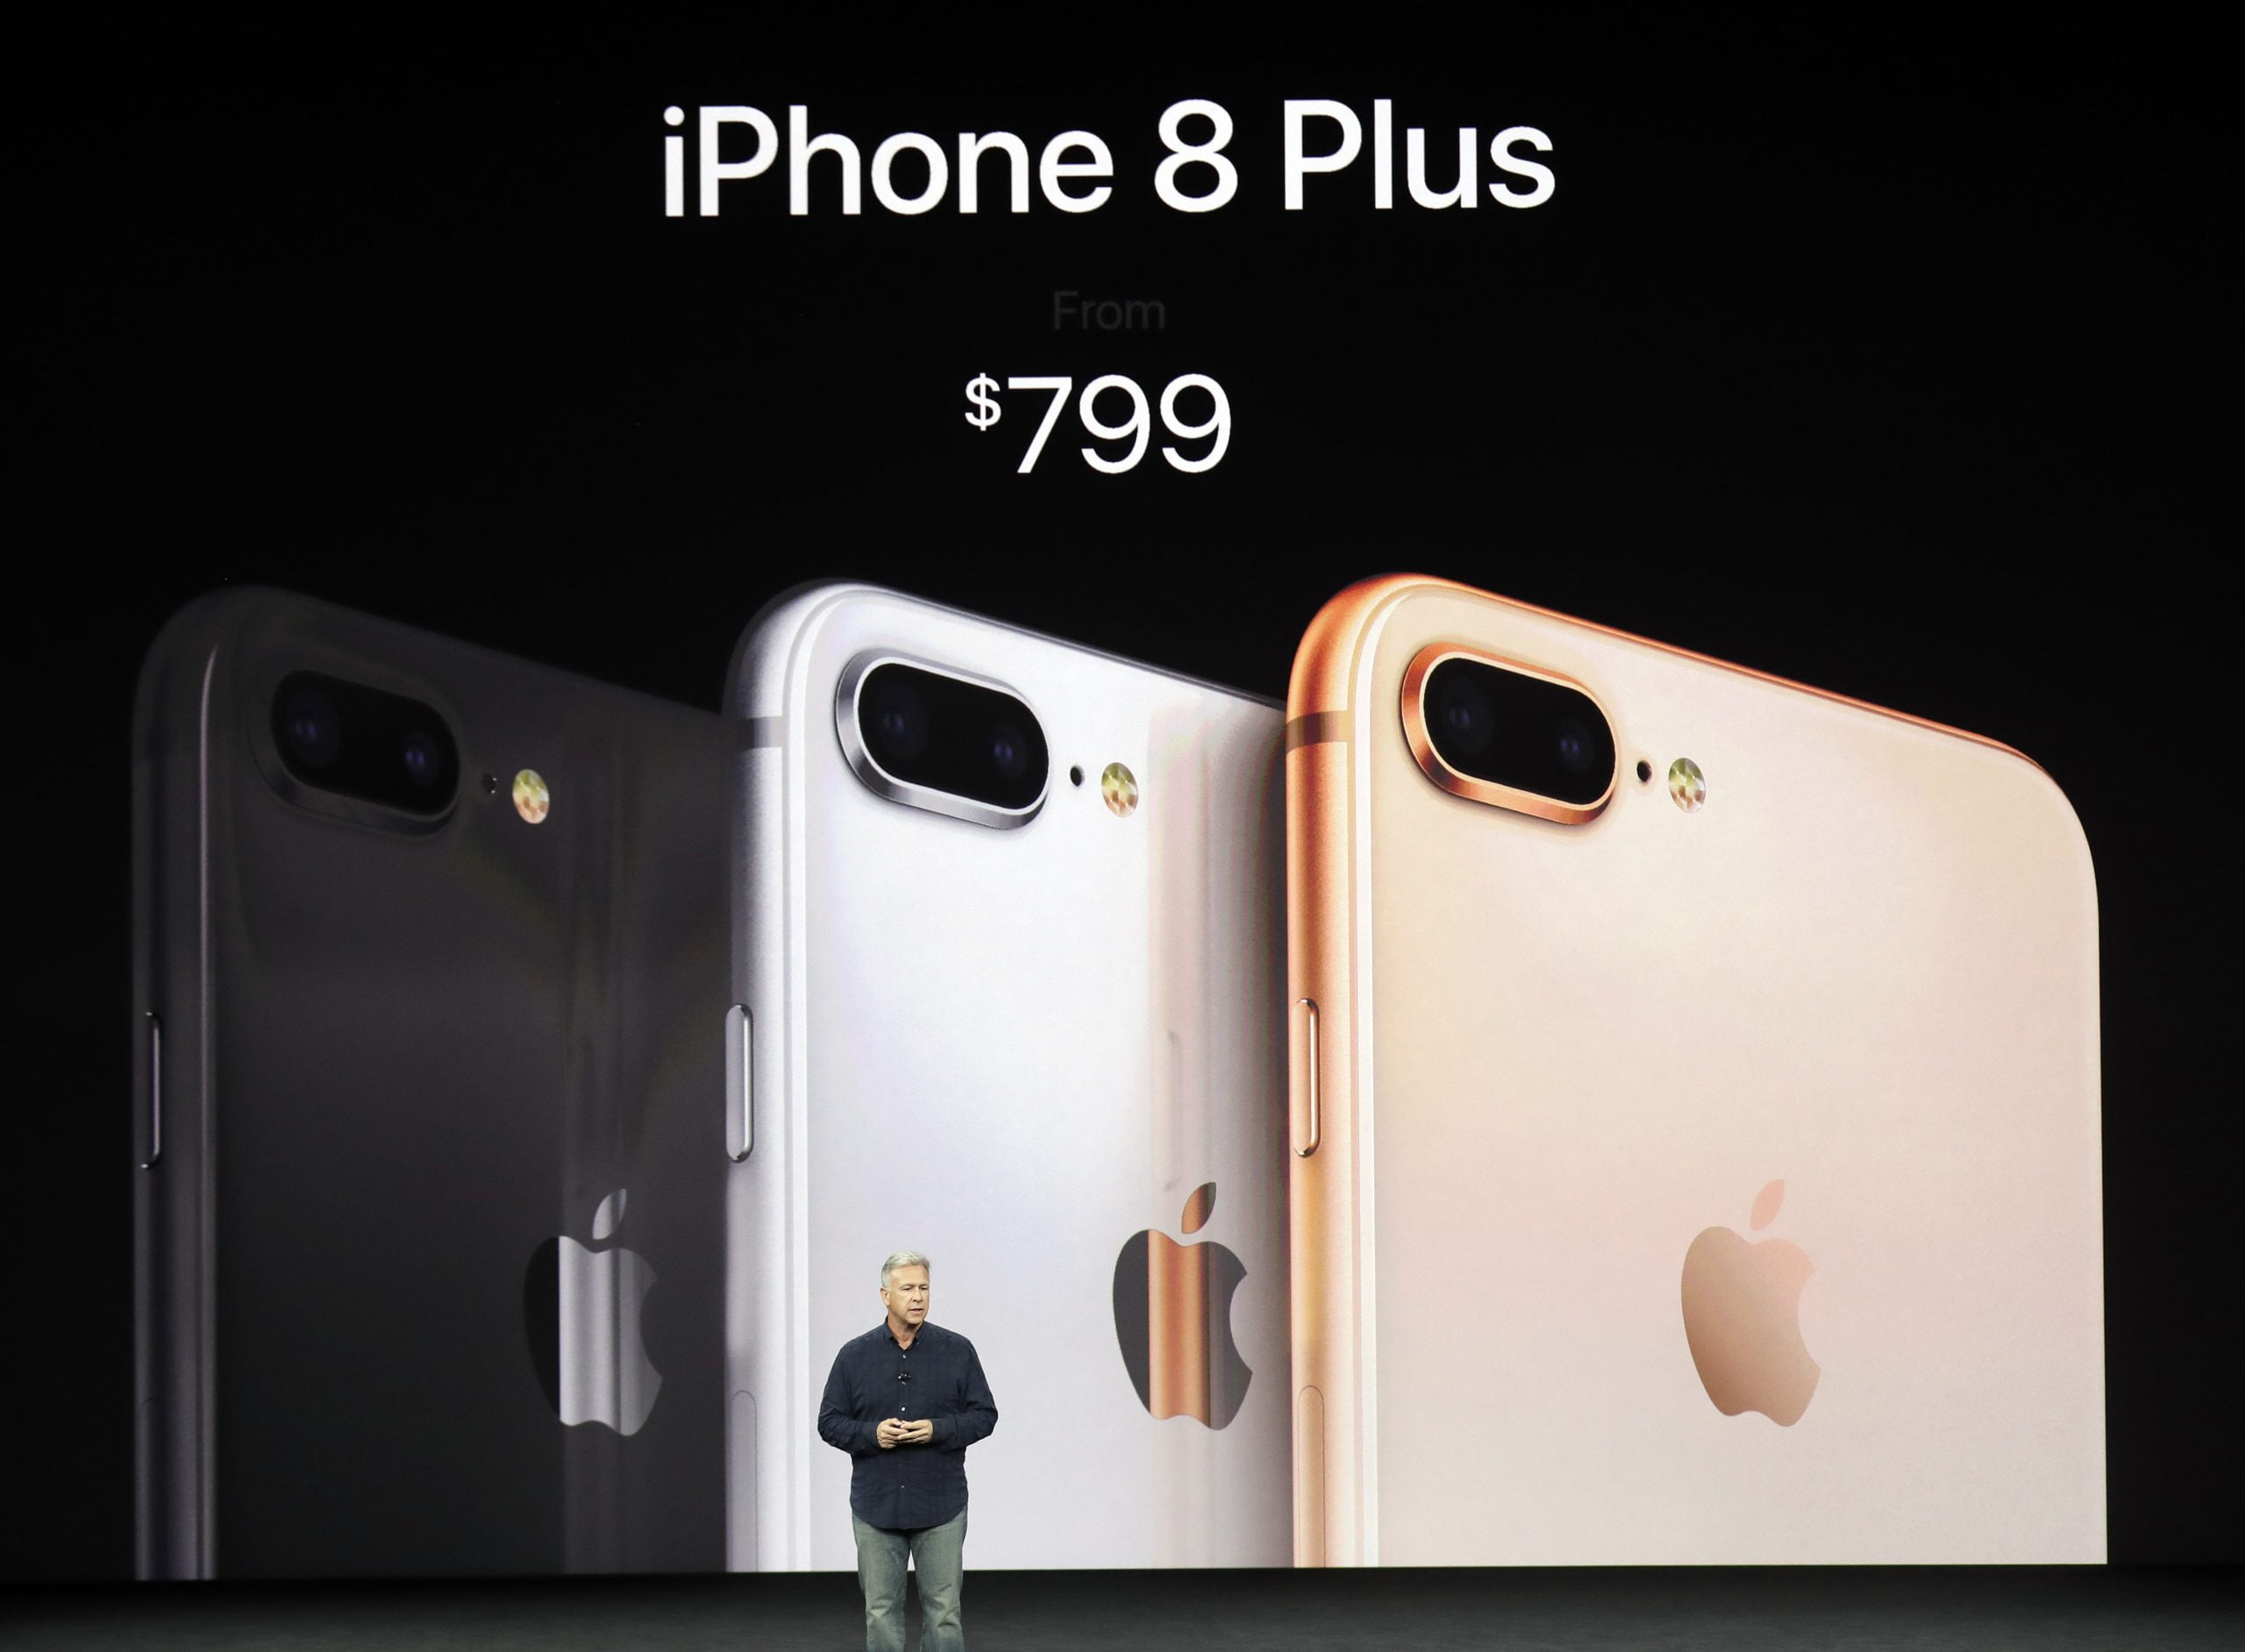 This could be the iPhone 8